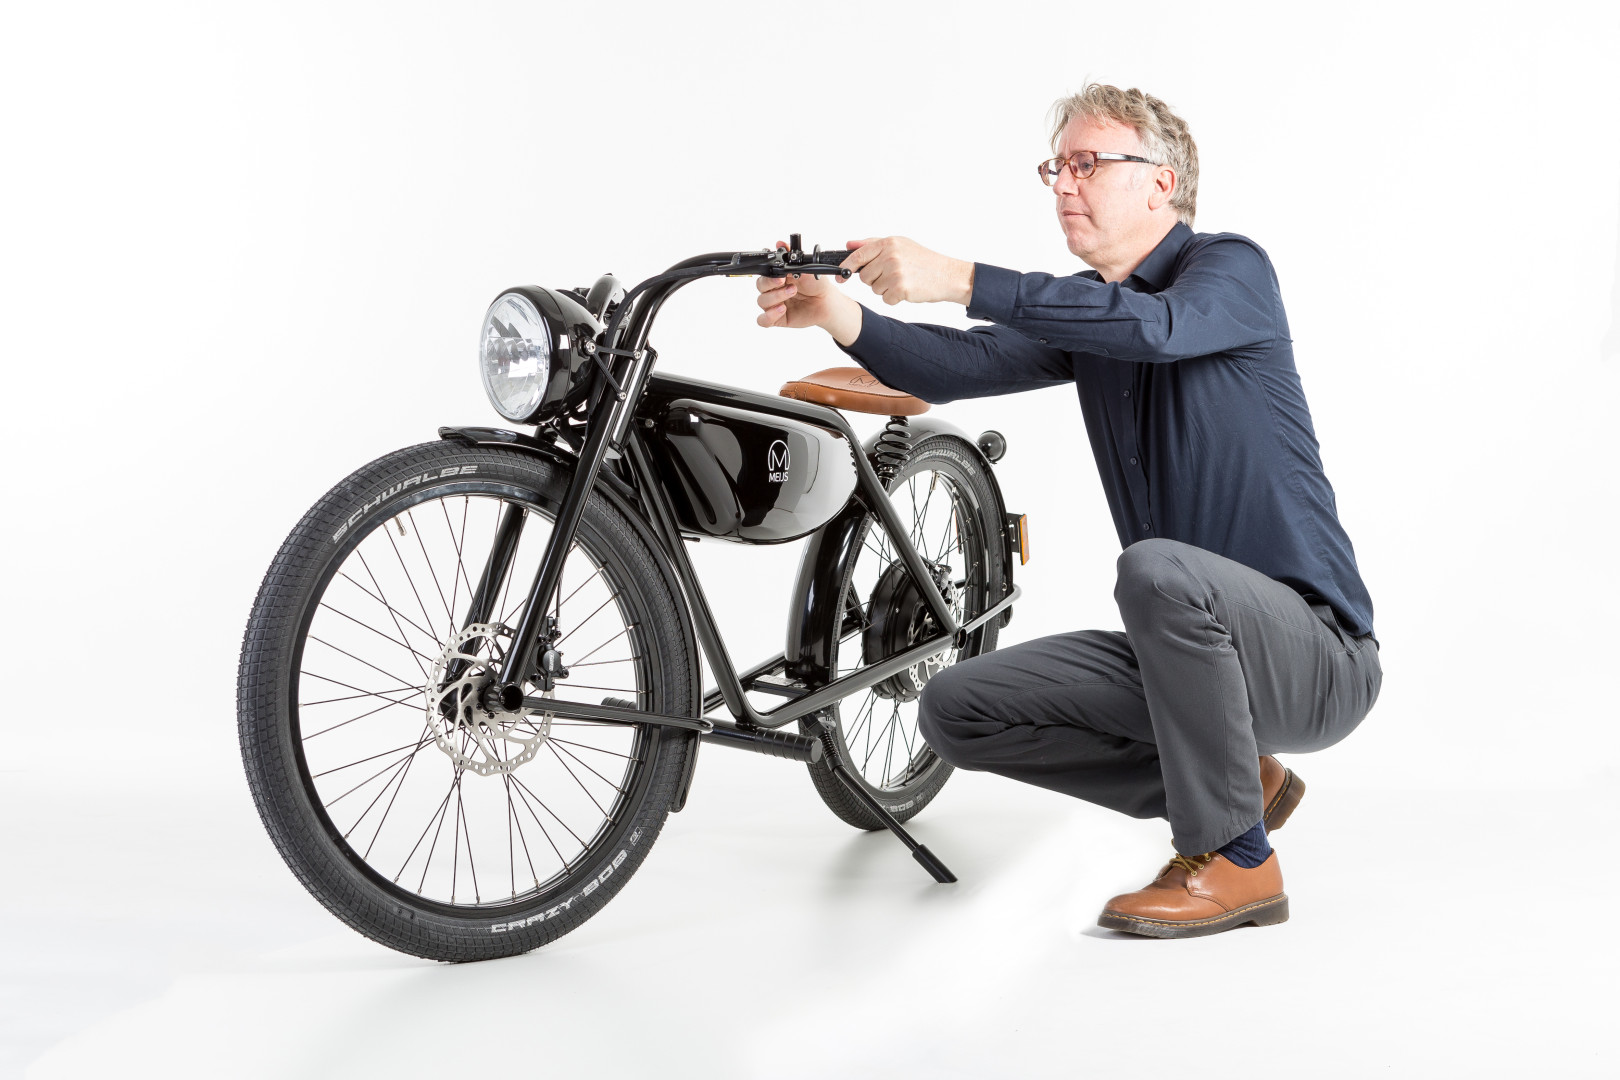 Meijs Motorman The 100 Electric Moped From Maastricht